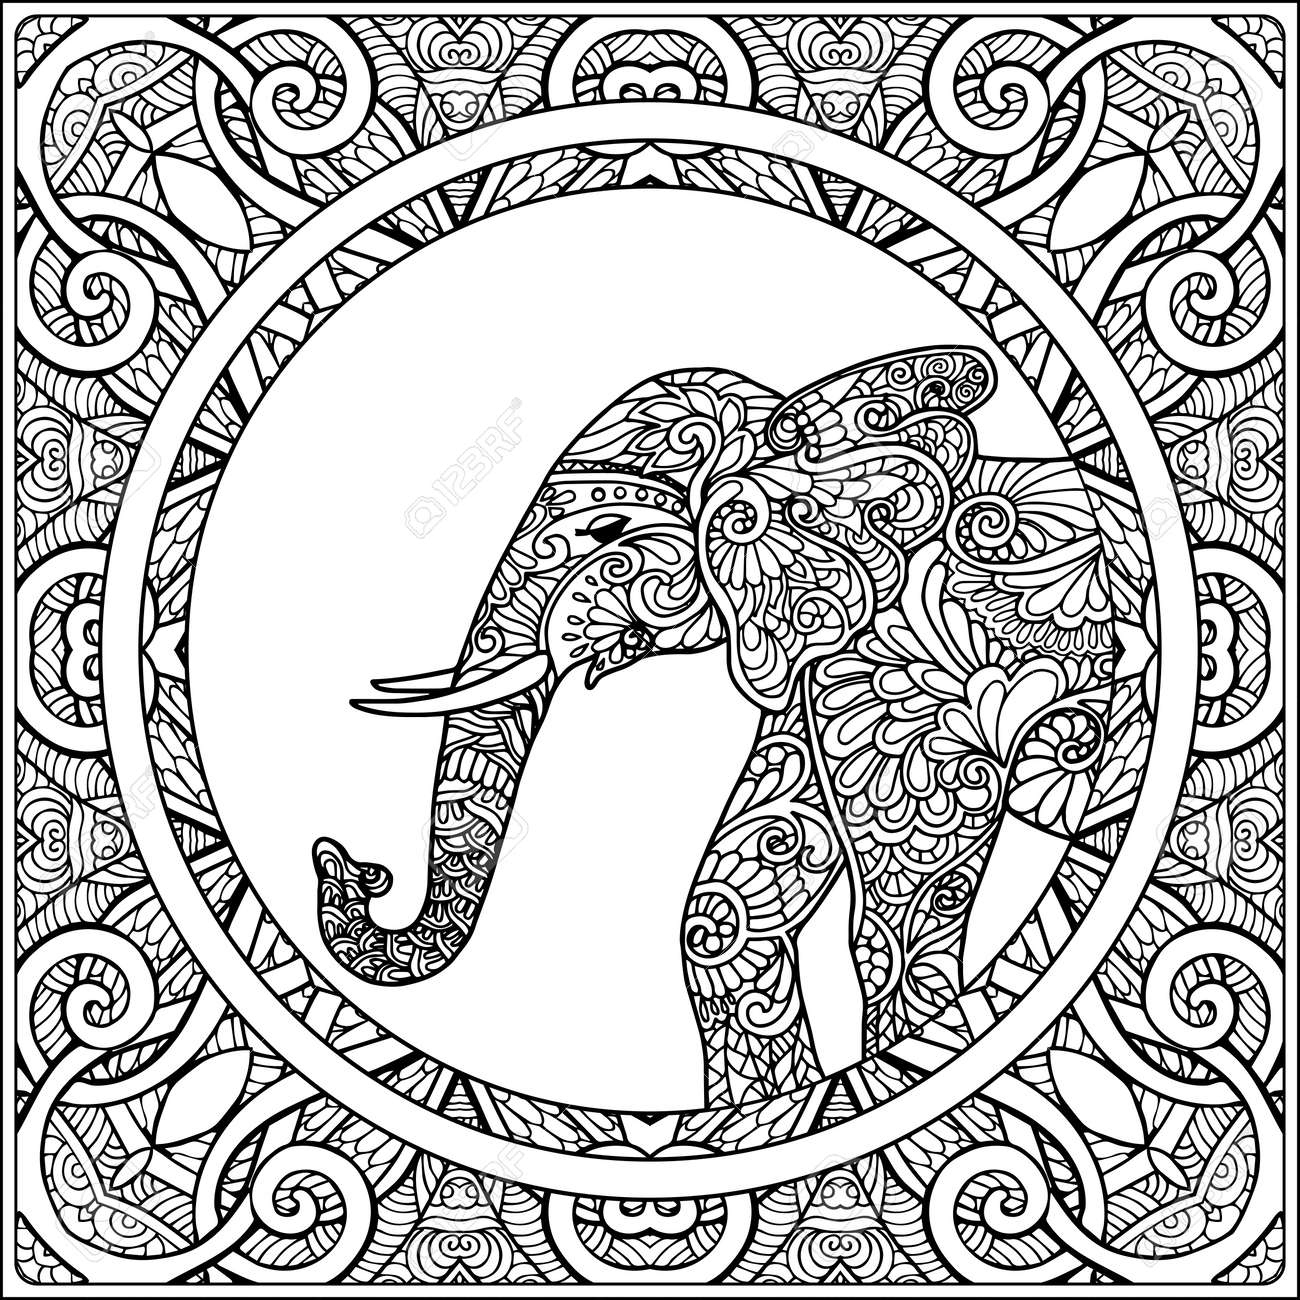 Coloring Page With Elephant In Decorative Mandala Frame. Coloring ...